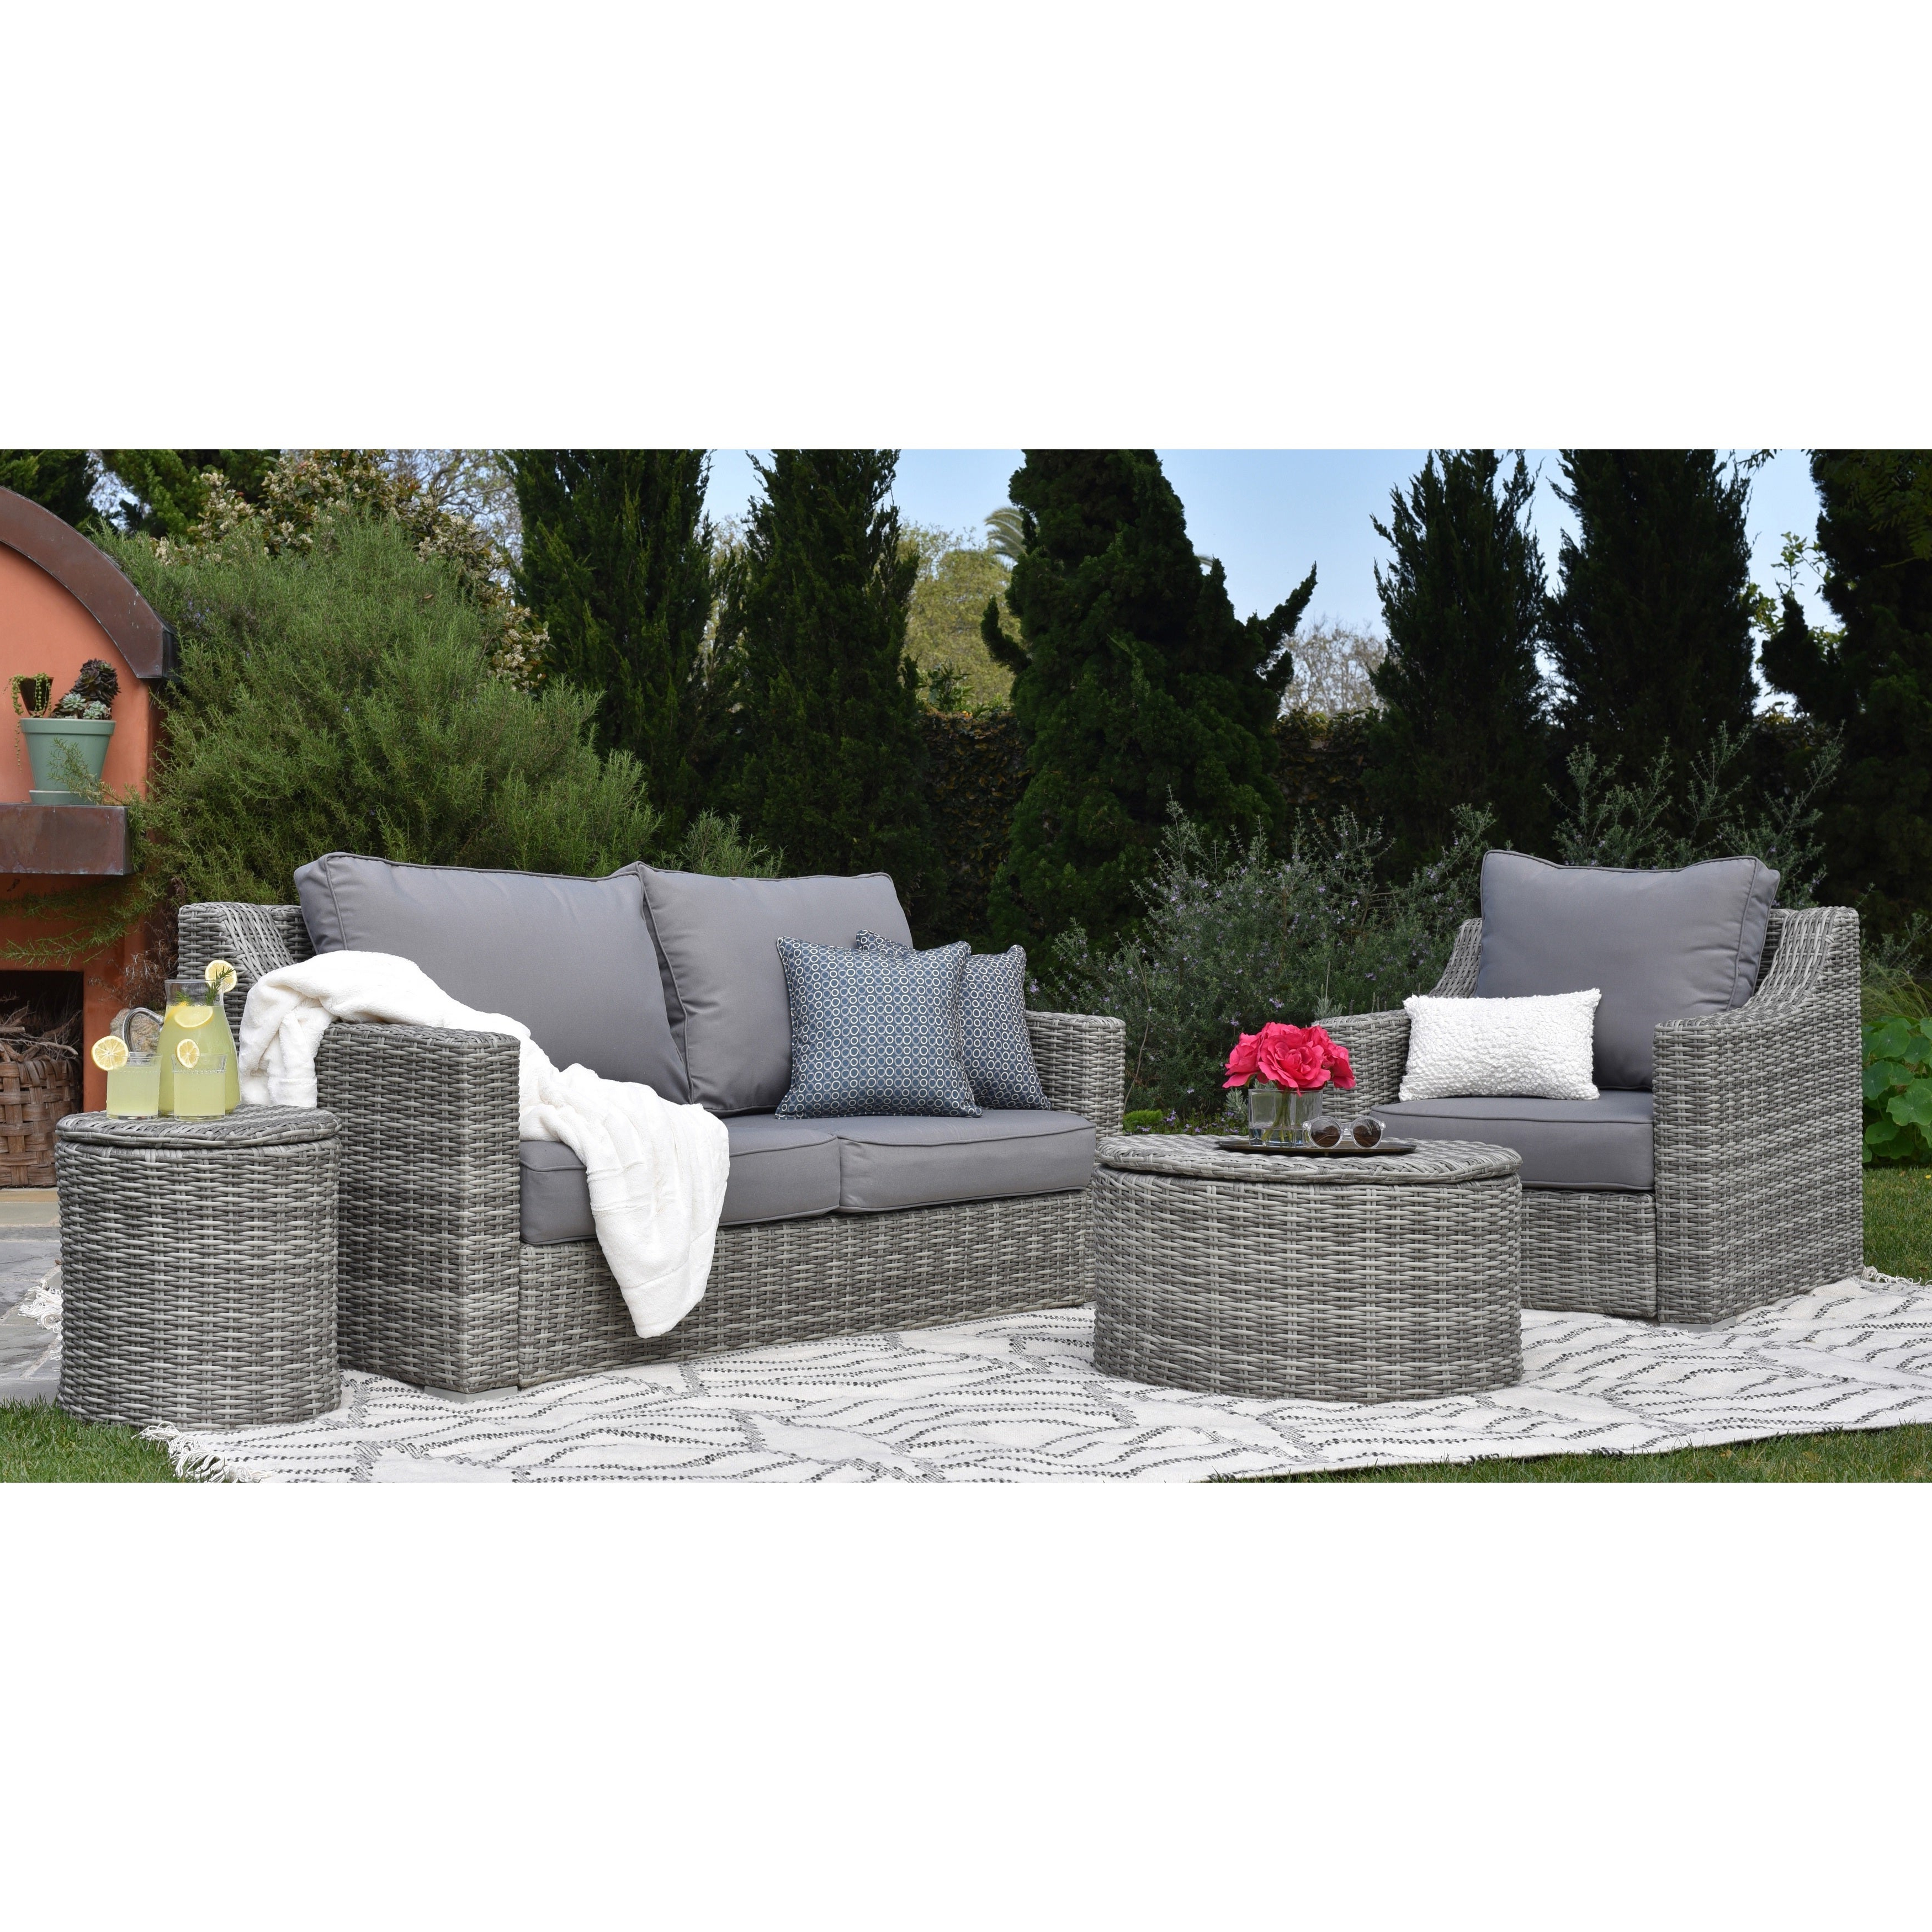 Vallauris Sofa With Cushions Intended For Well Liked Elle Decor Vallauris Outdoor Arm Chair (View 15 of 20)